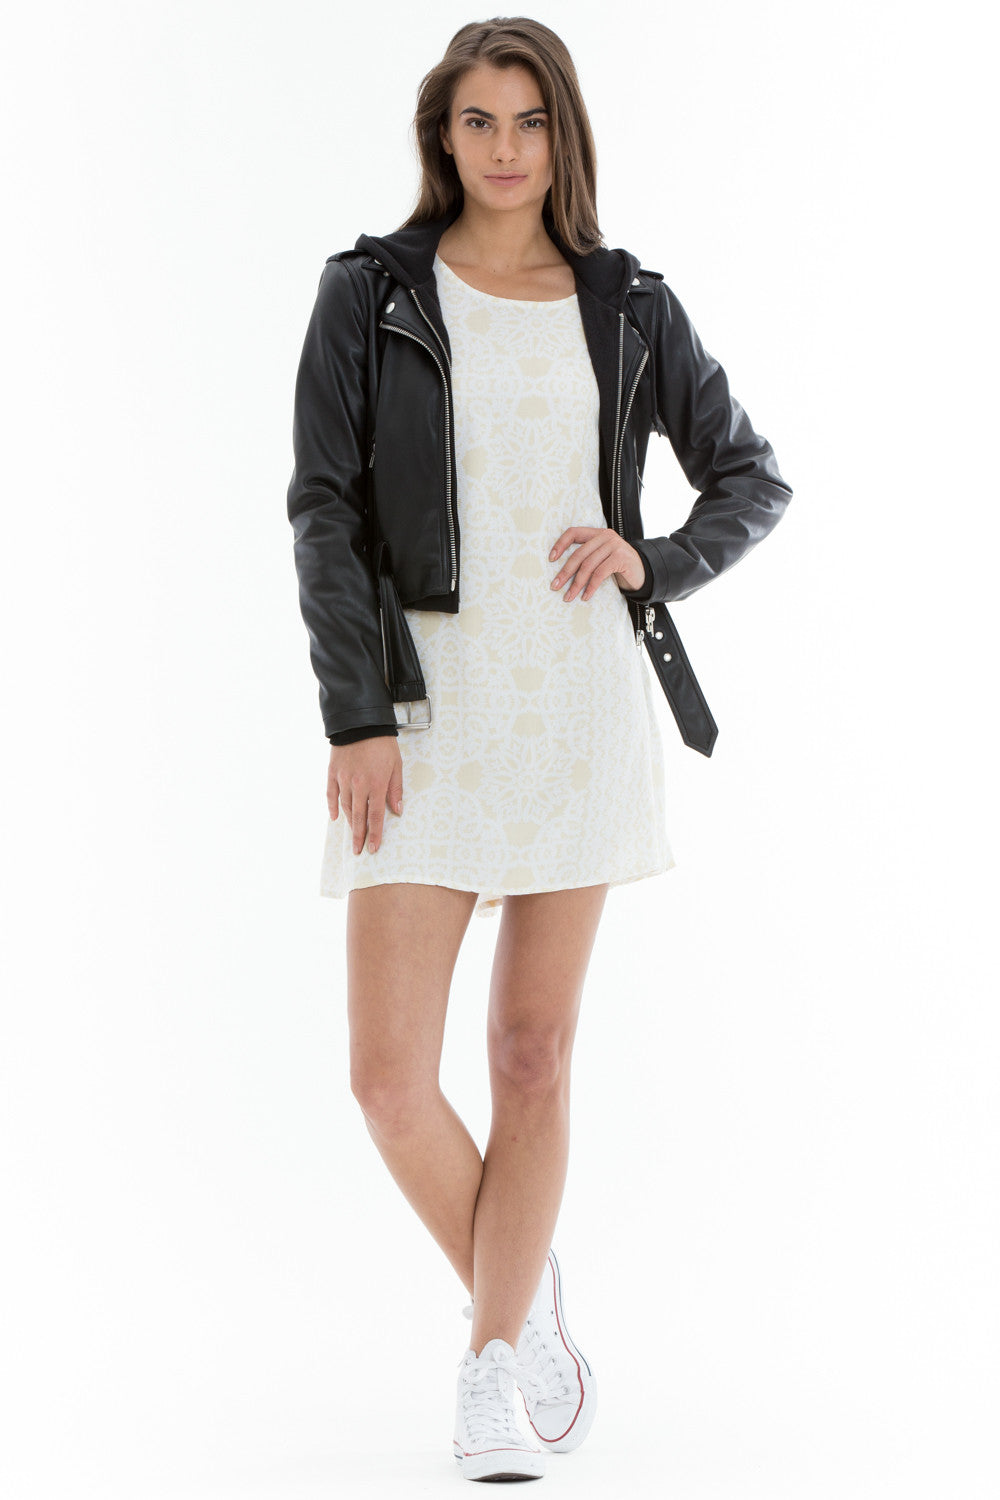 OBEY - One Love Women's Jacket, Black - The Giant Peach